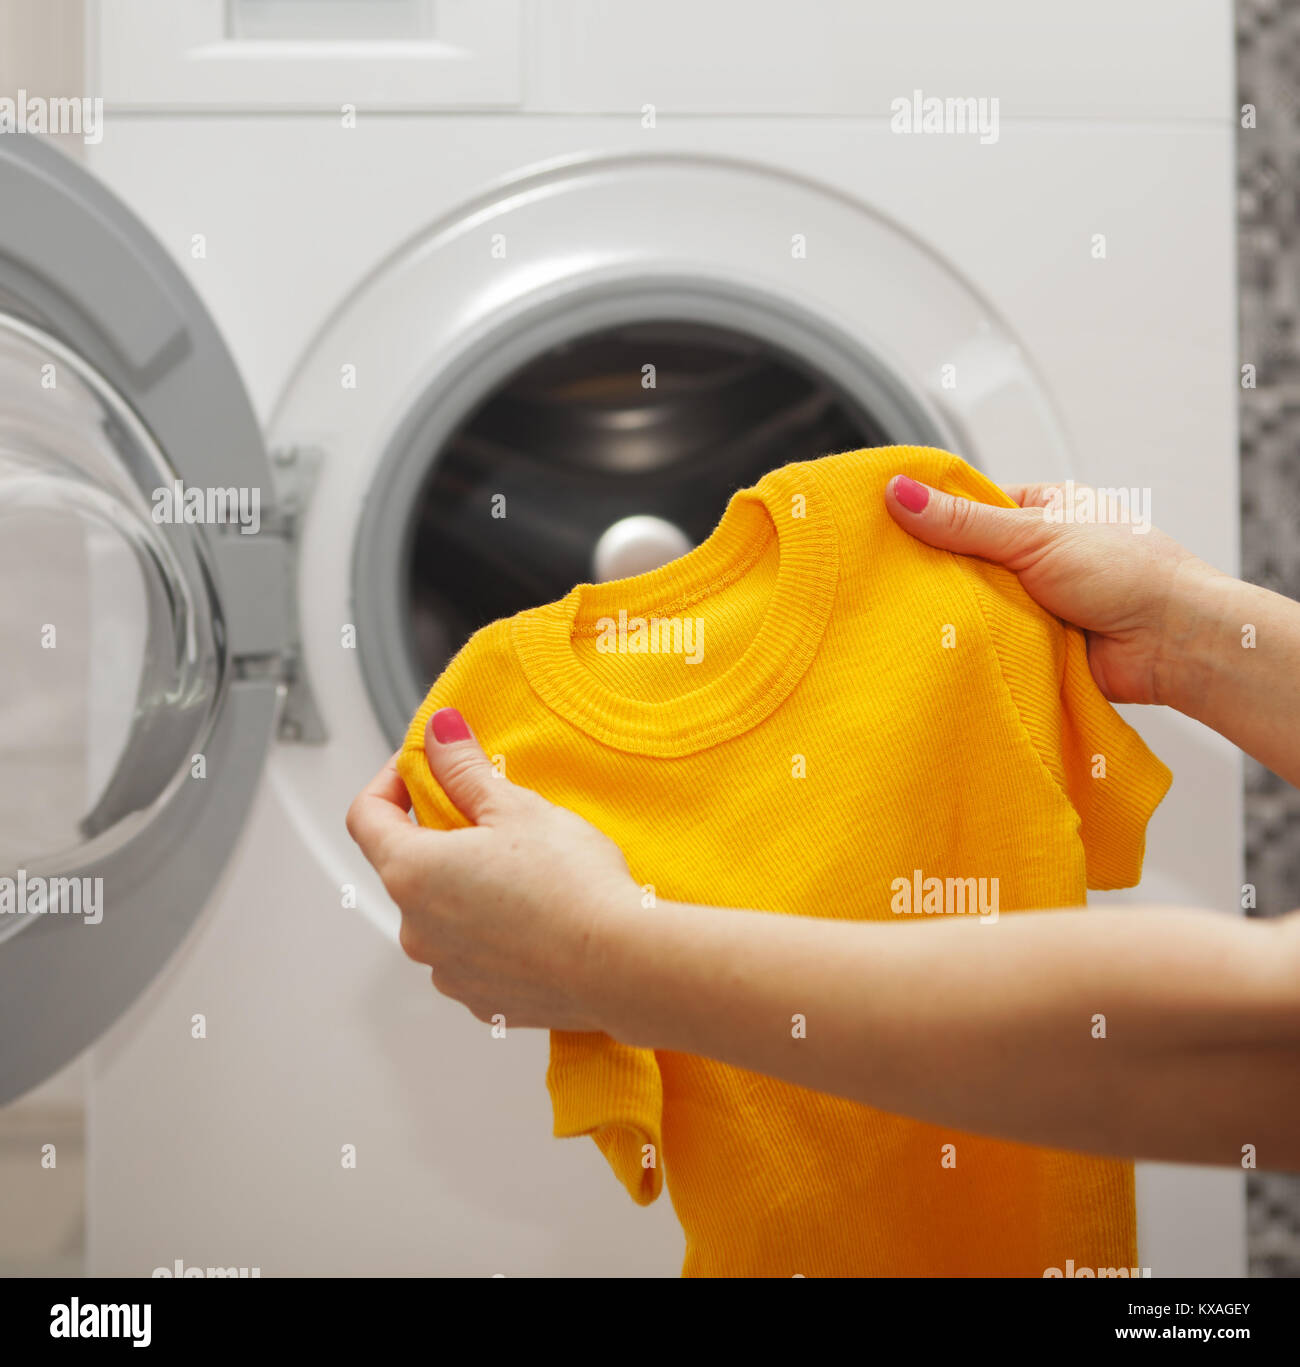 Knitted T-shirt in the hands of a woman who is going to wash it in washing mashine - Stock Image